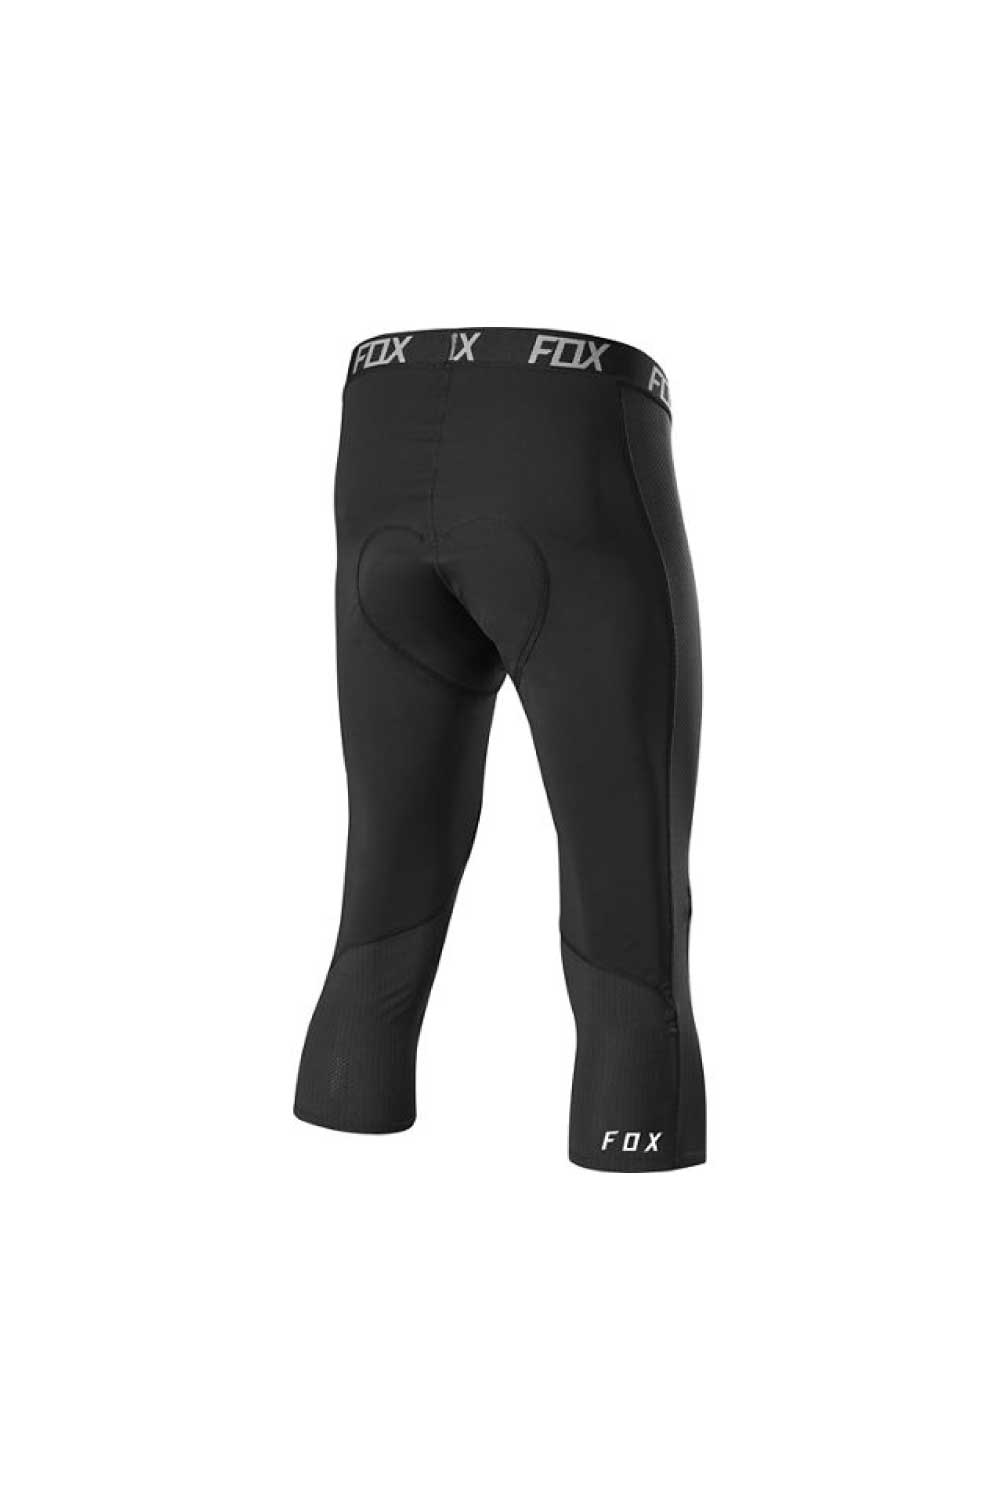 FOX Racing Men's Enduro Pro MTB Tights